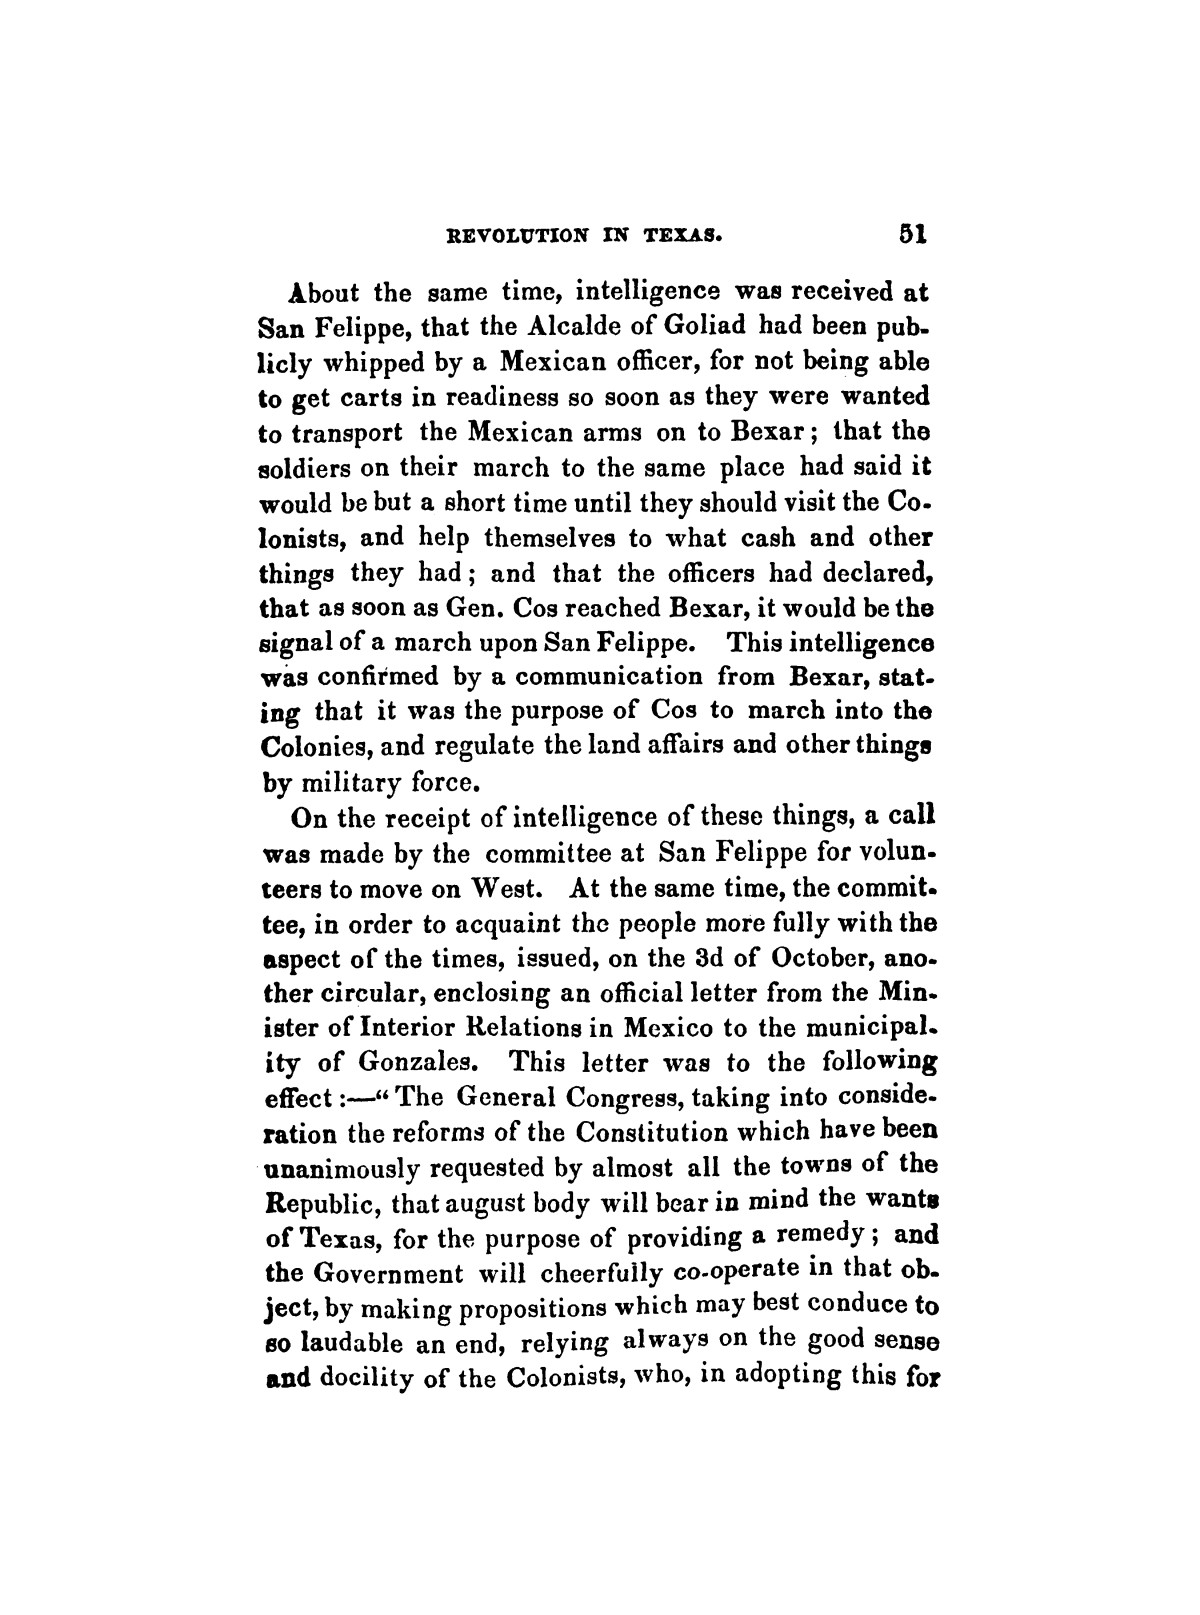 History of the revolution in Texas, particularly of the war of 1835 & '36; together with the latest geographical, topographical, and statistical accounts of the country, from the most authentic sources. Also, an appendix. By the Rev. C. Newell.                                                                                                      [Sequence #]: 63 of 227